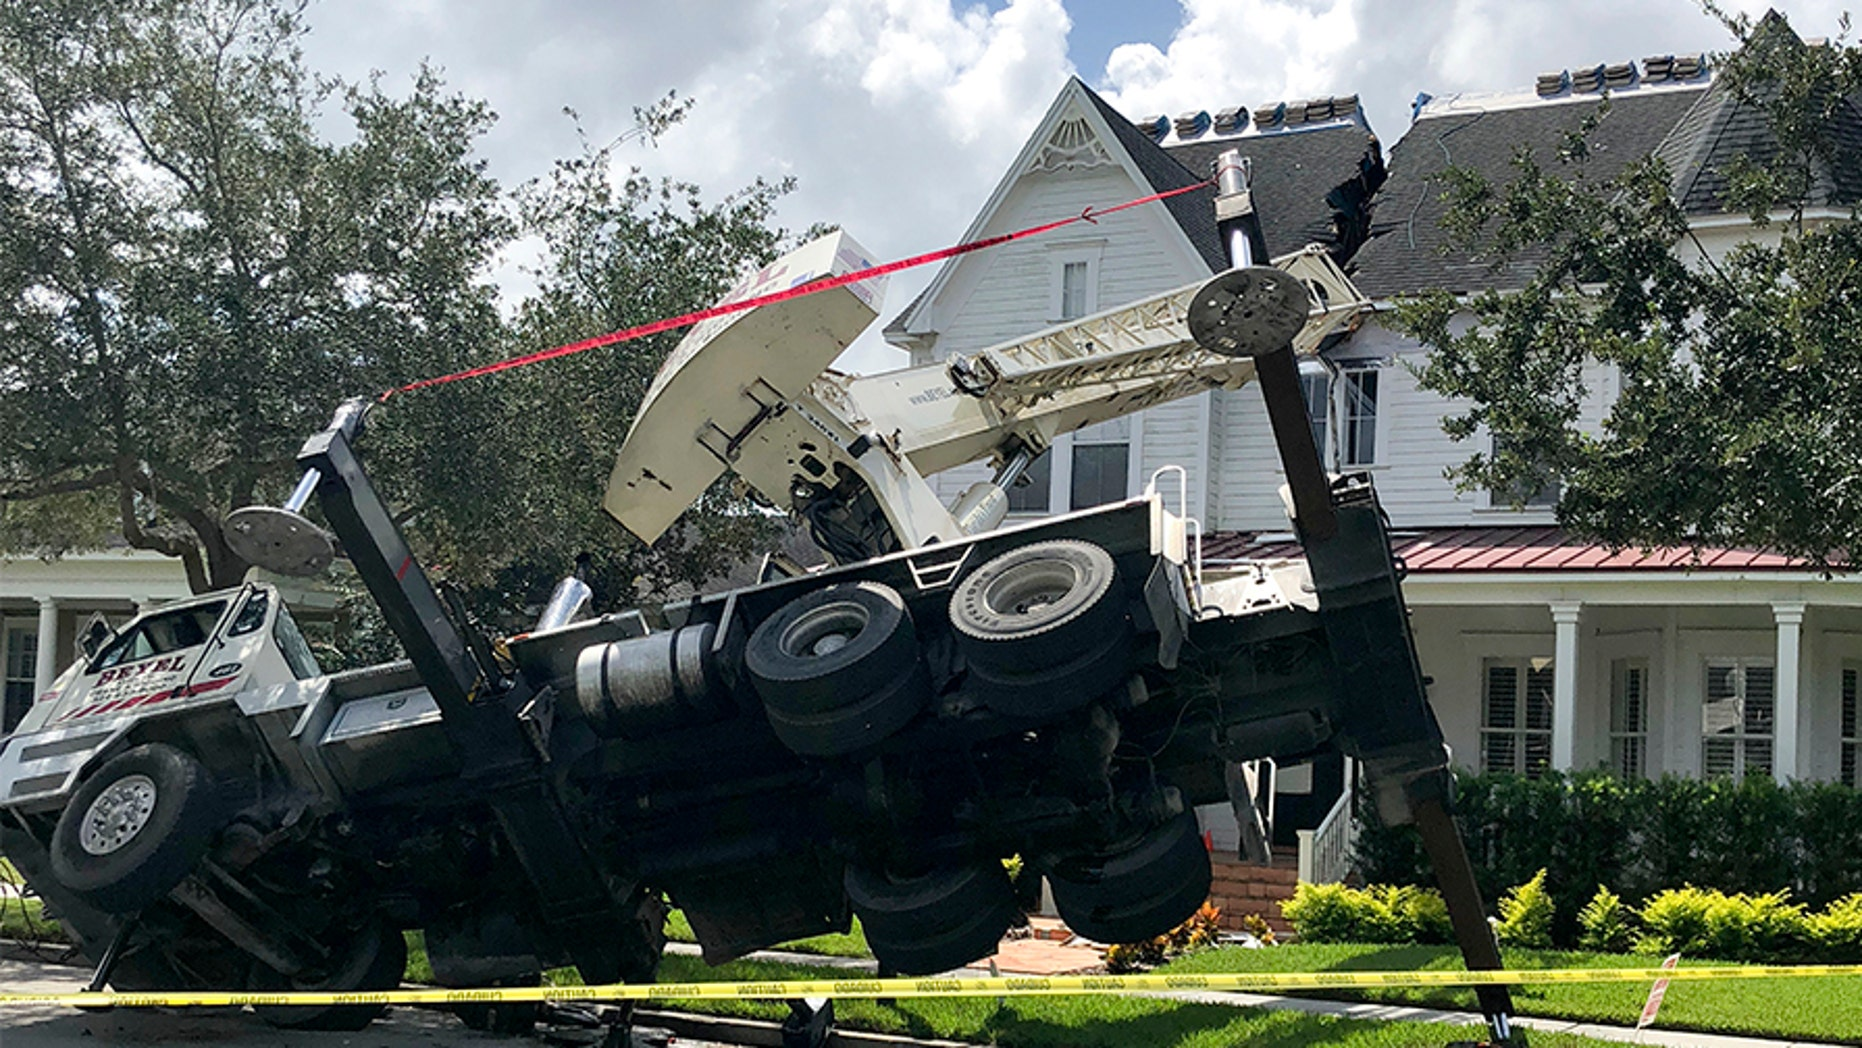 This photo released by the Orlando Fire Department shows a truck carrying a crane tipped over, damaging a house in Orlando, Fla., on Tuesday.